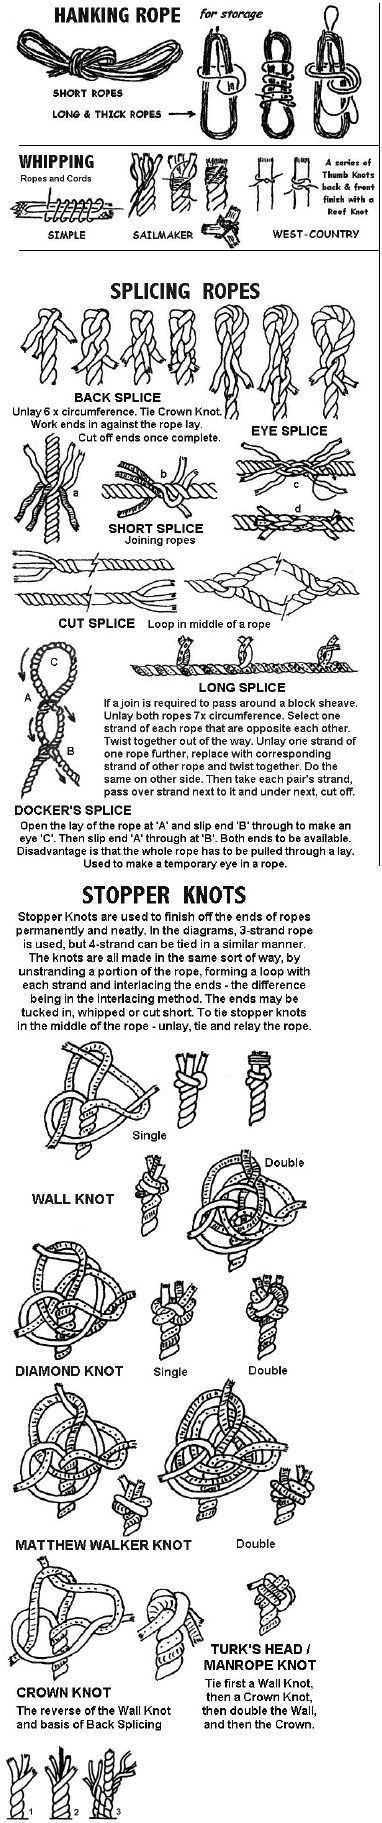 Hanking, whipping, splicer ropes, stopper knots, and more. . .